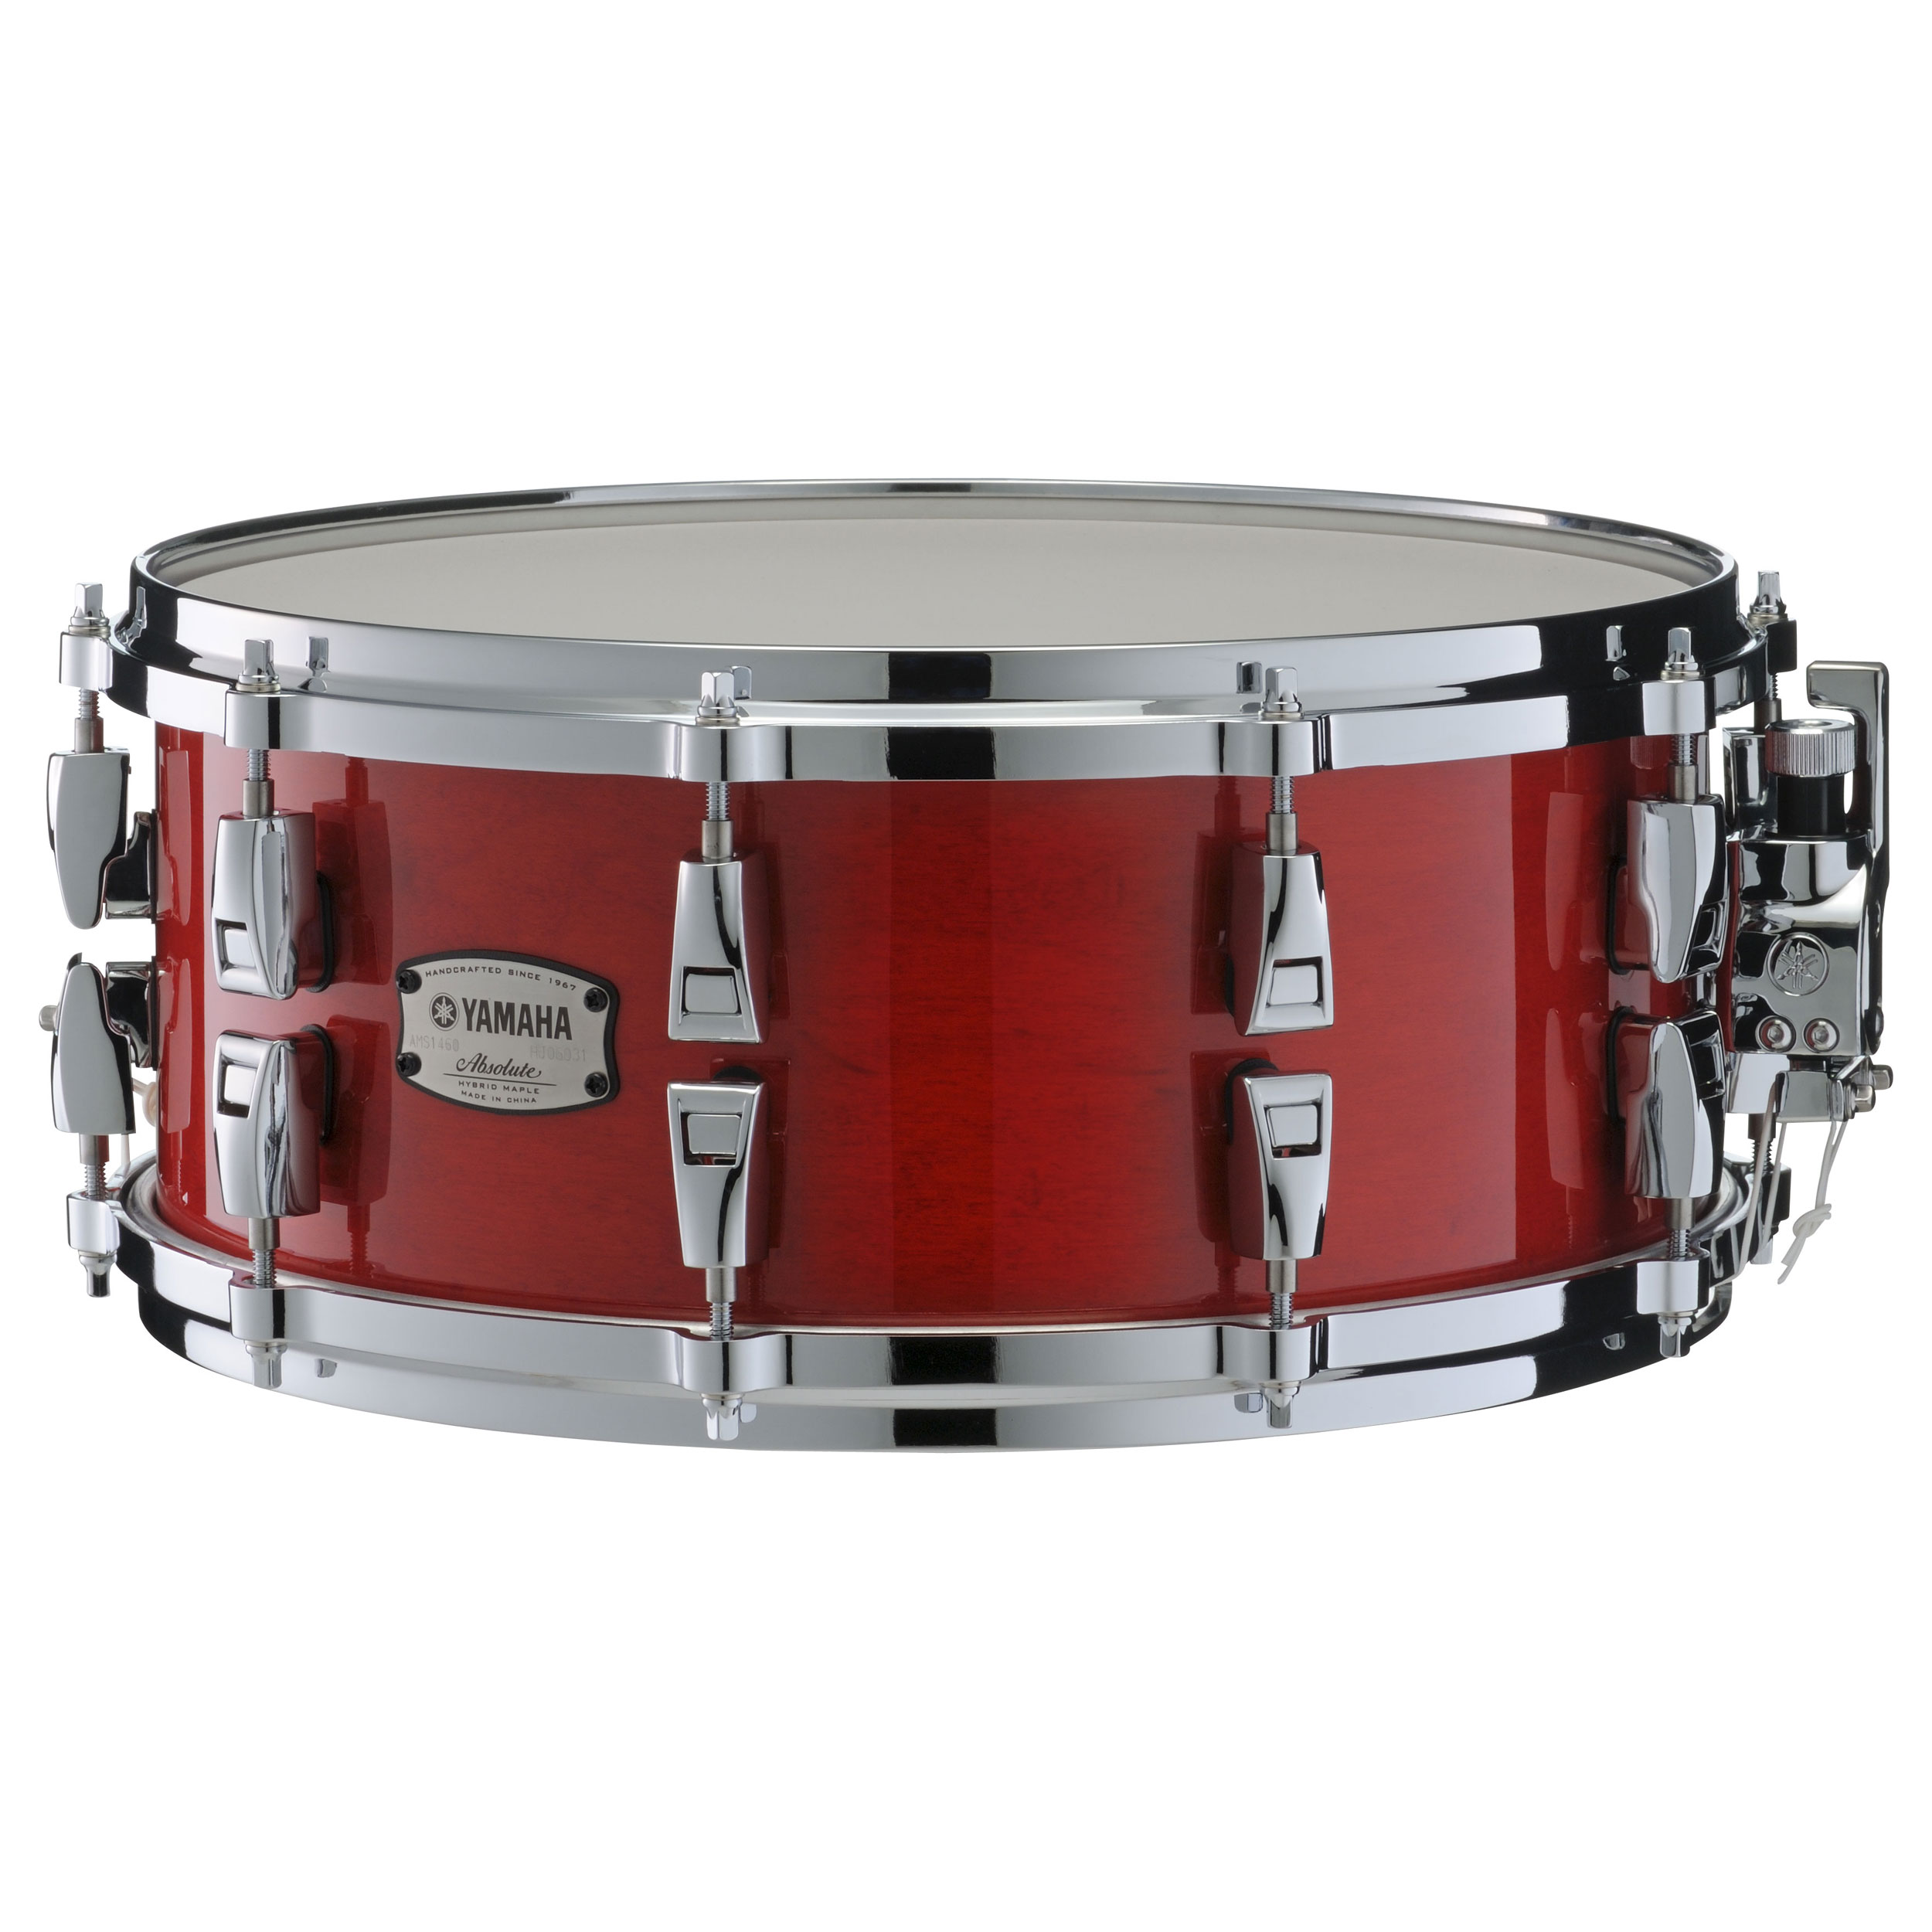 "Yamaha 6"" x 14"" Absolute Hybrid Maple Snare Drum"